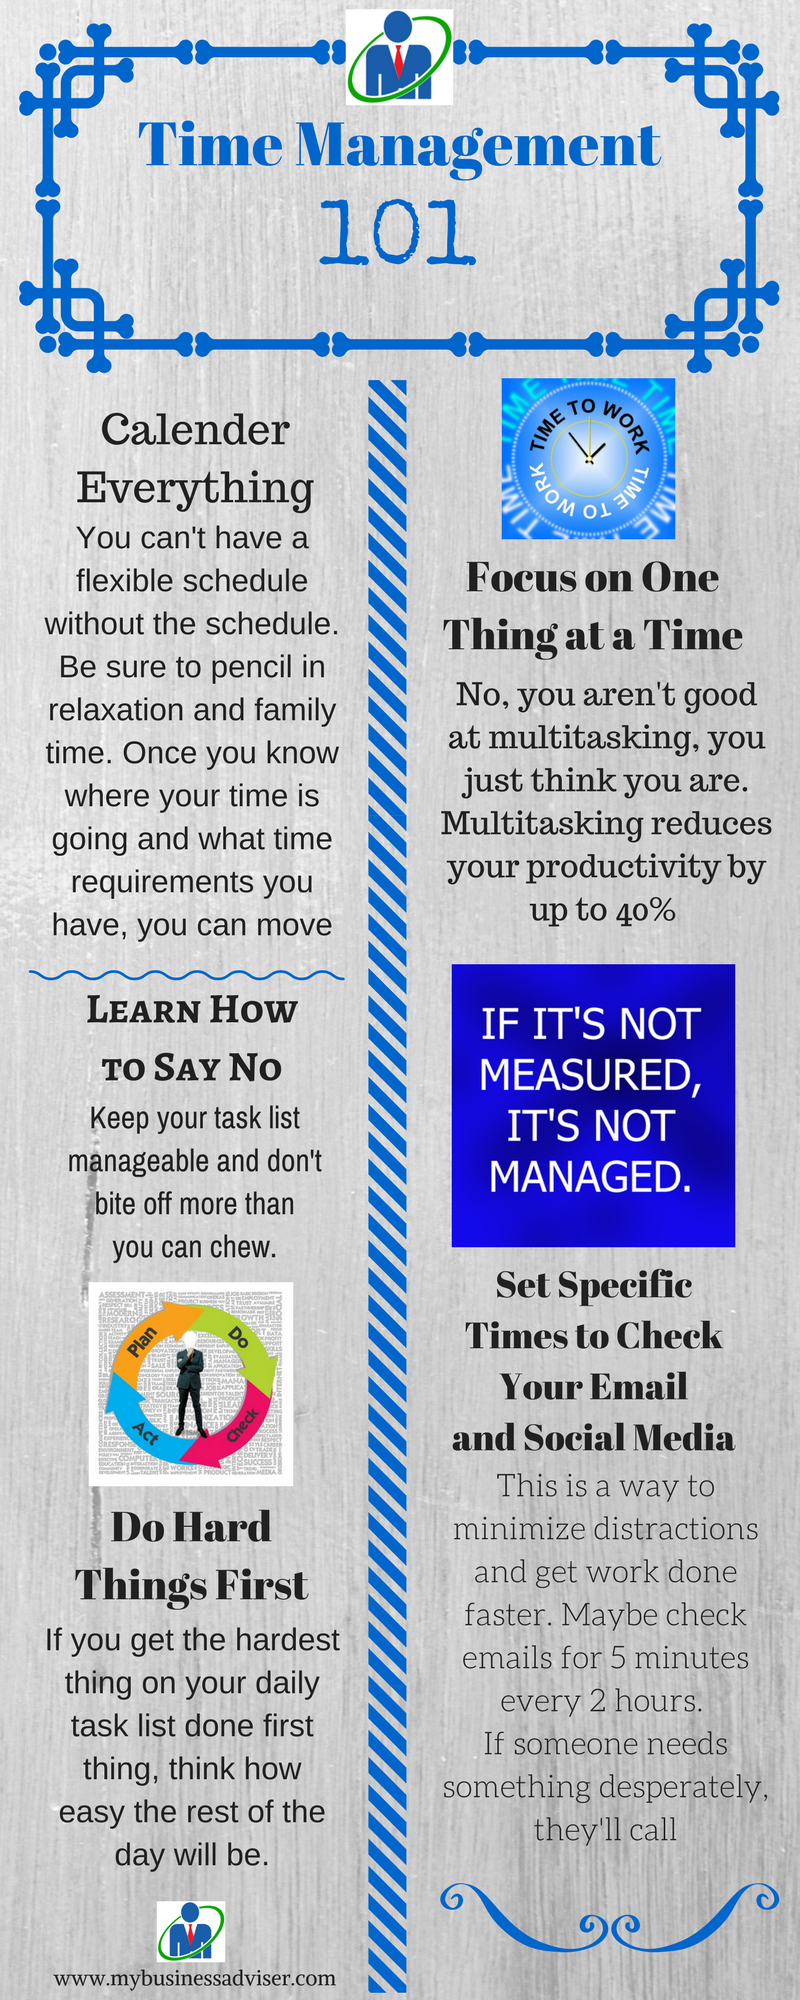 Time Management - info